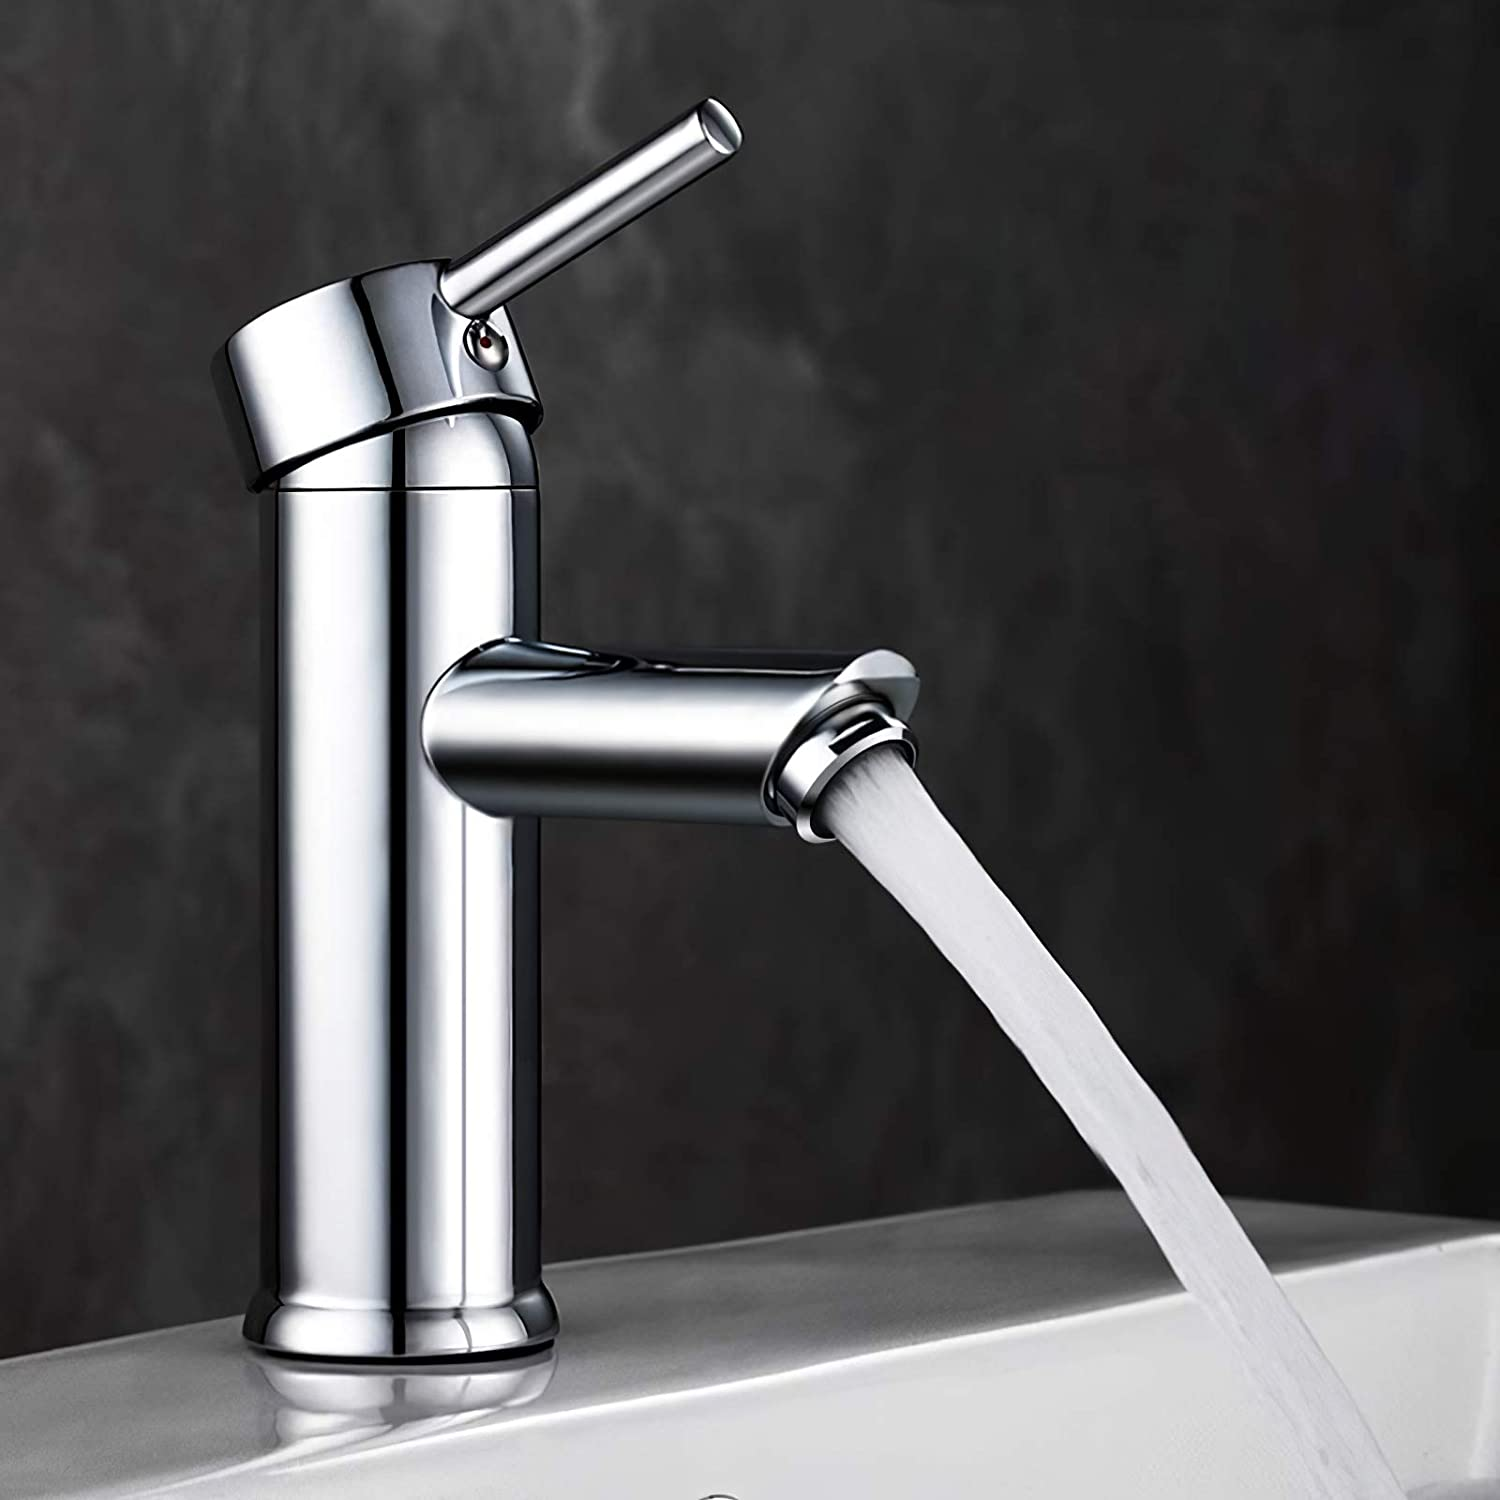 GAVAER Bathroom Tap Exquisite Basin Mixer Tap for Washroom and Bathroom Sink Single Lever Cold and Hot Water Available Basin Tap Chrome Finish Solid Brass